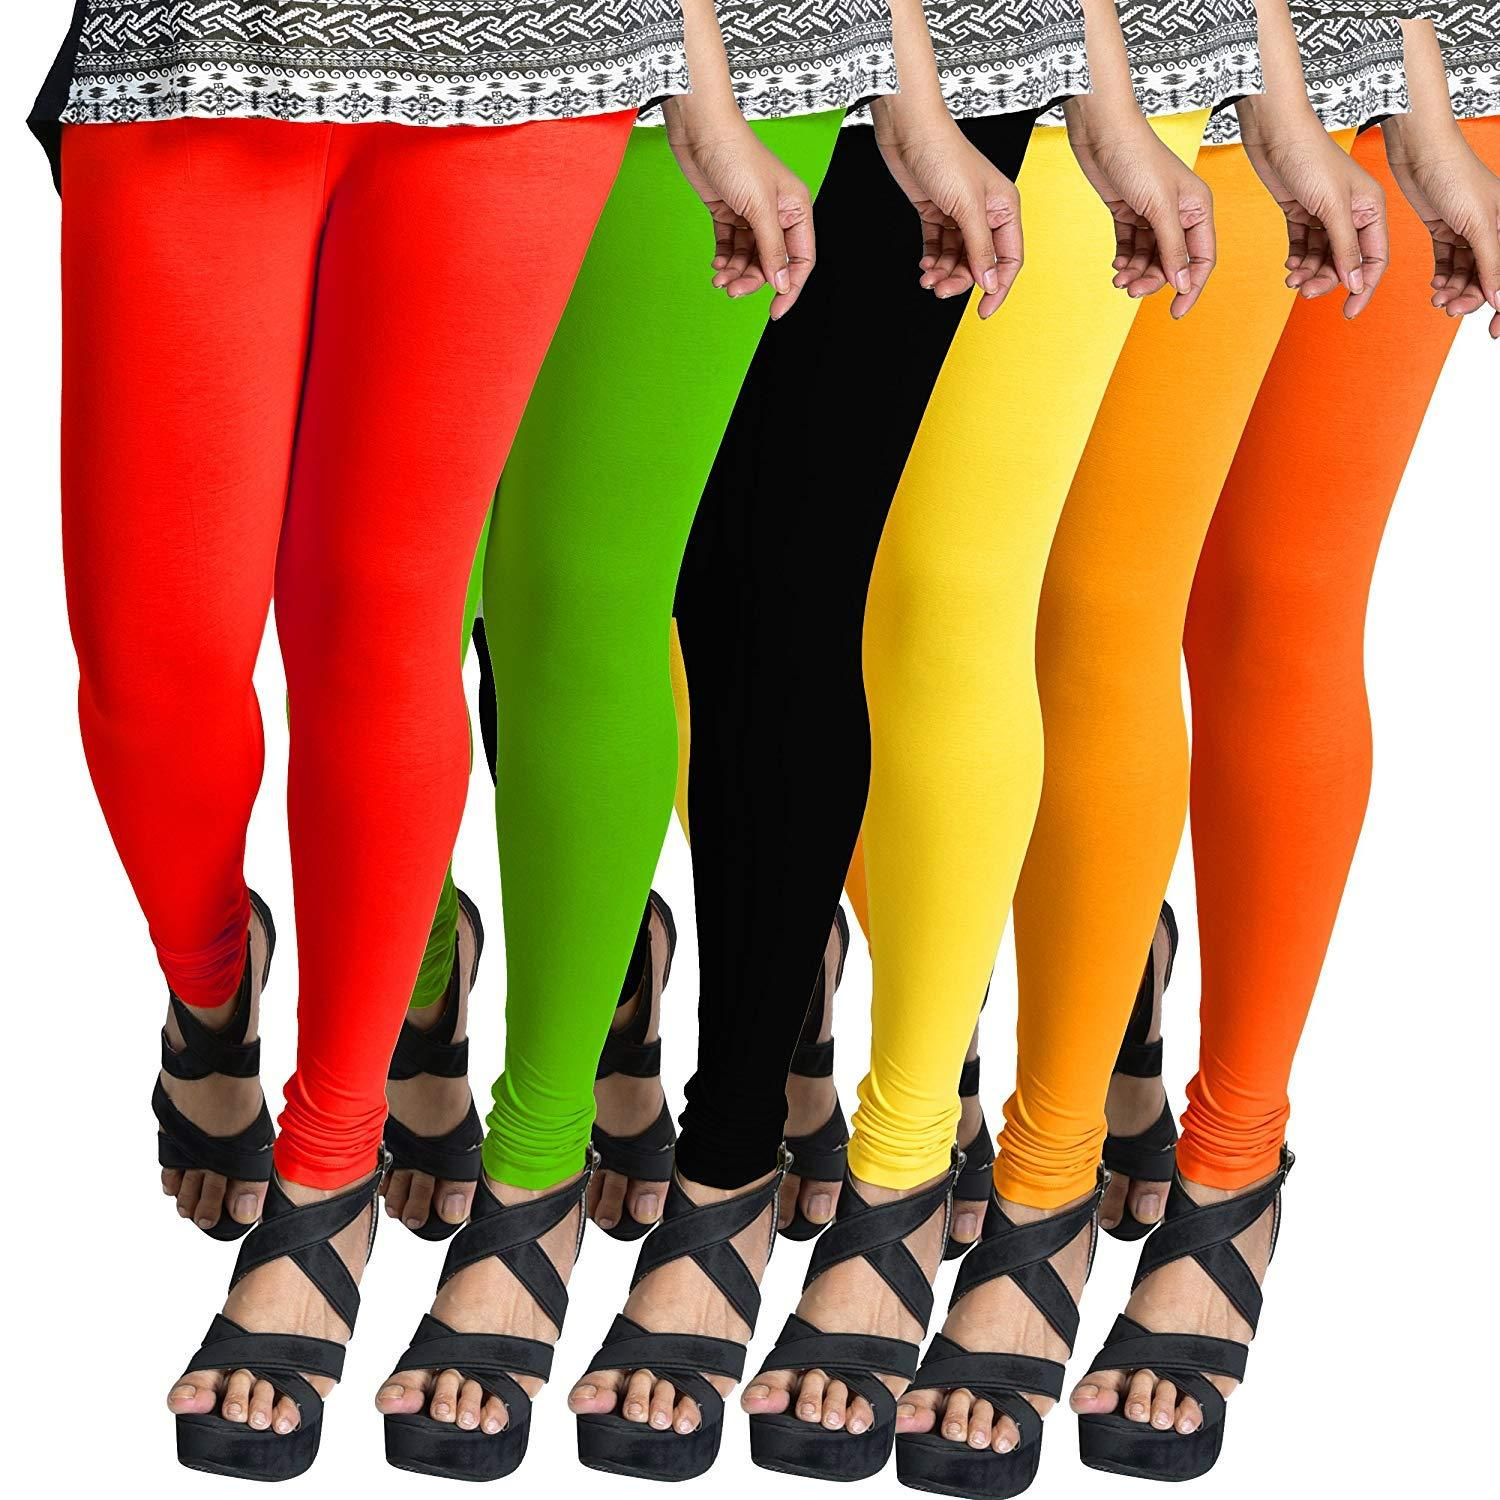 Cotton Stretchable Leggings for Women- Combo Pack of 6 (Multicolour, Free Size)